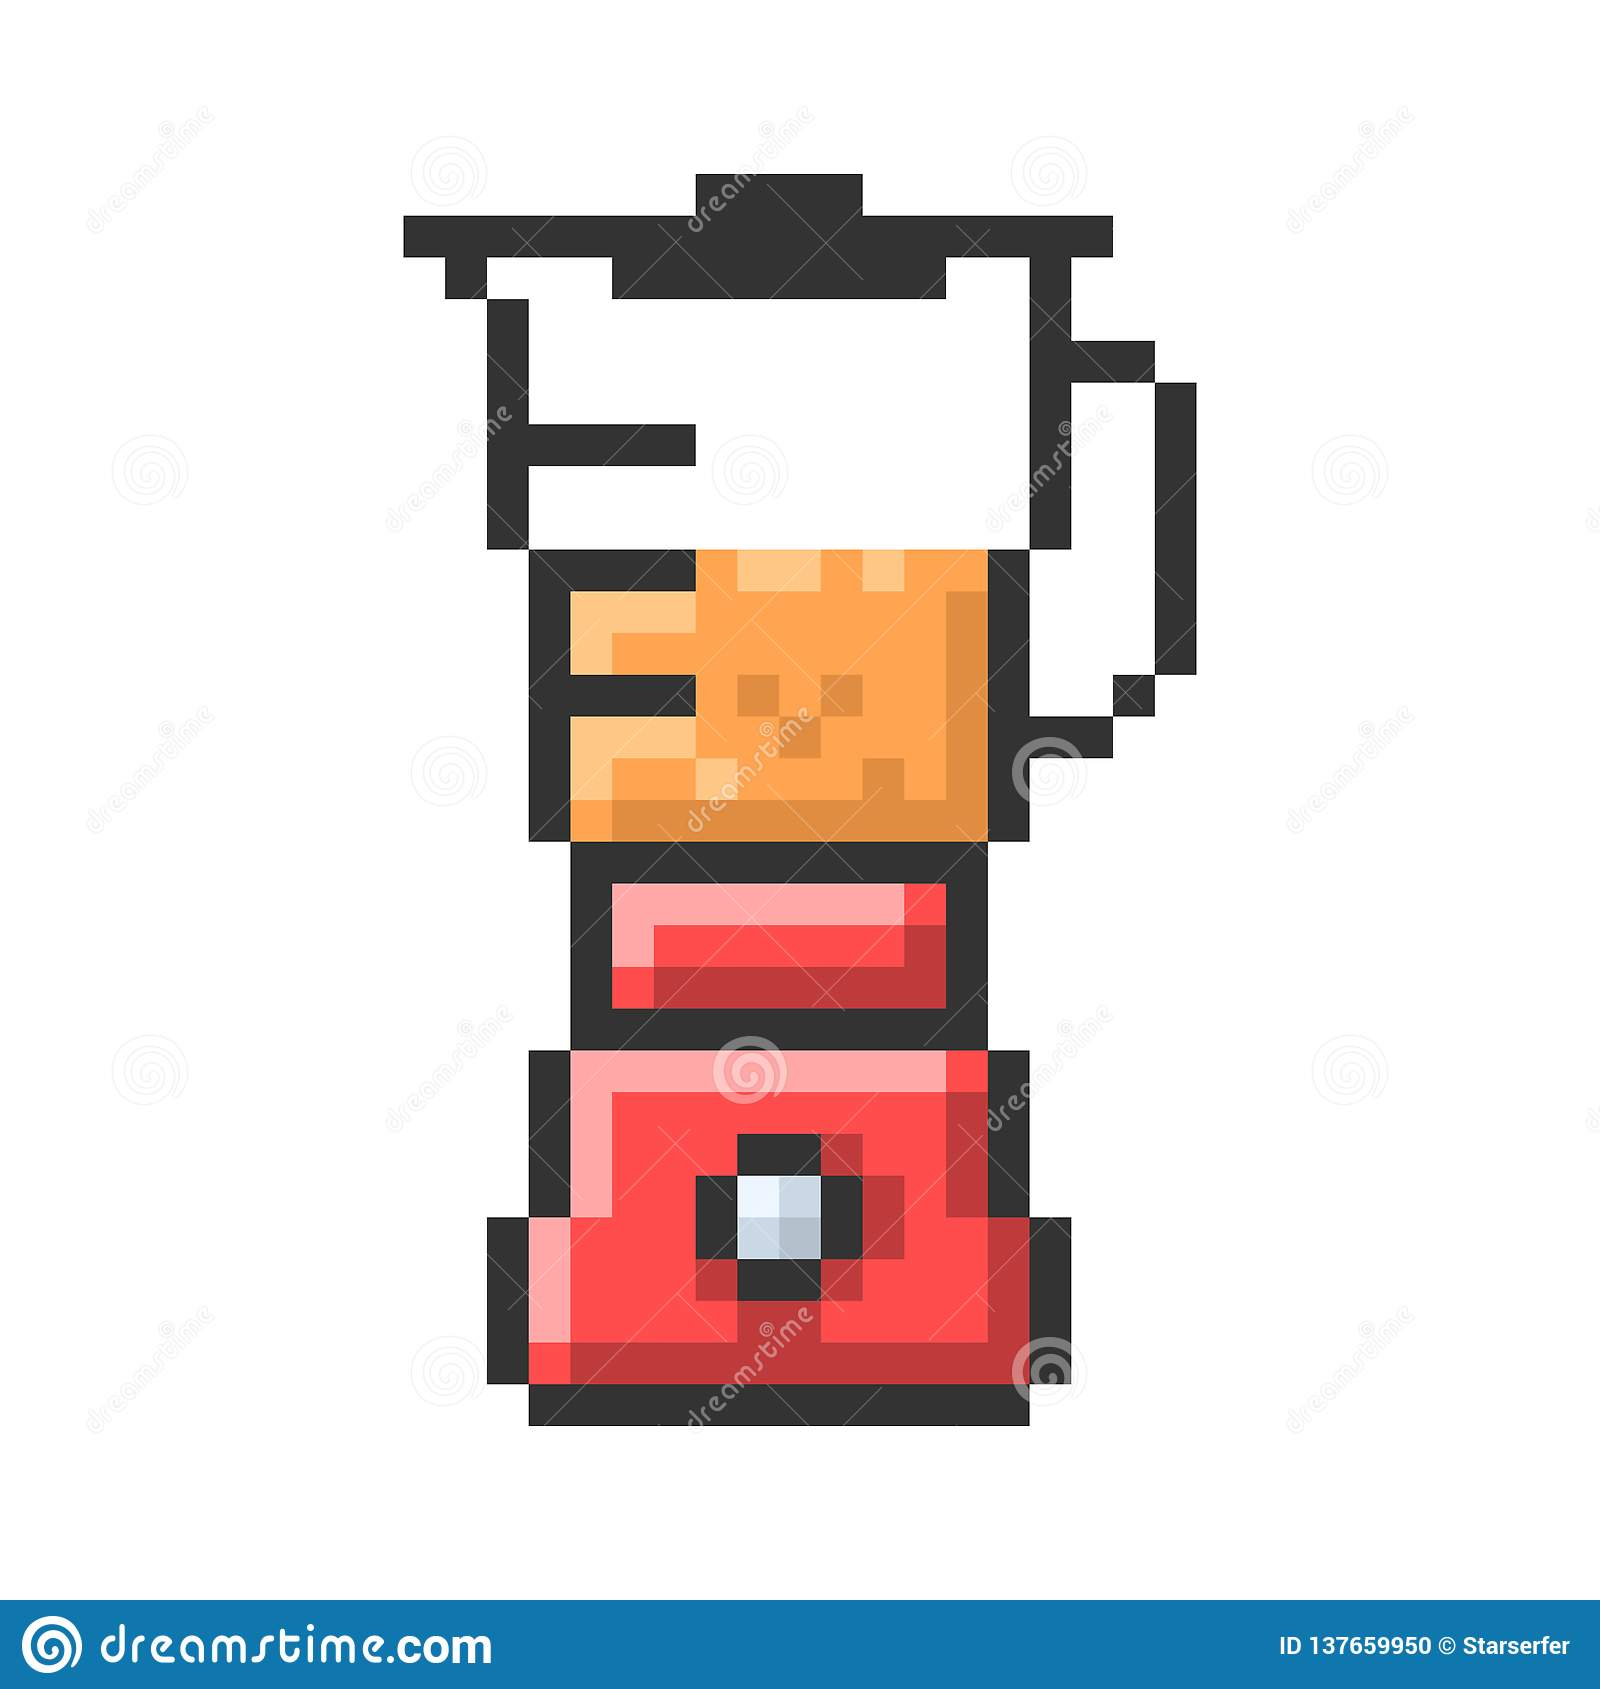 Outlined Pixel Icon Of Blender Stock Vector